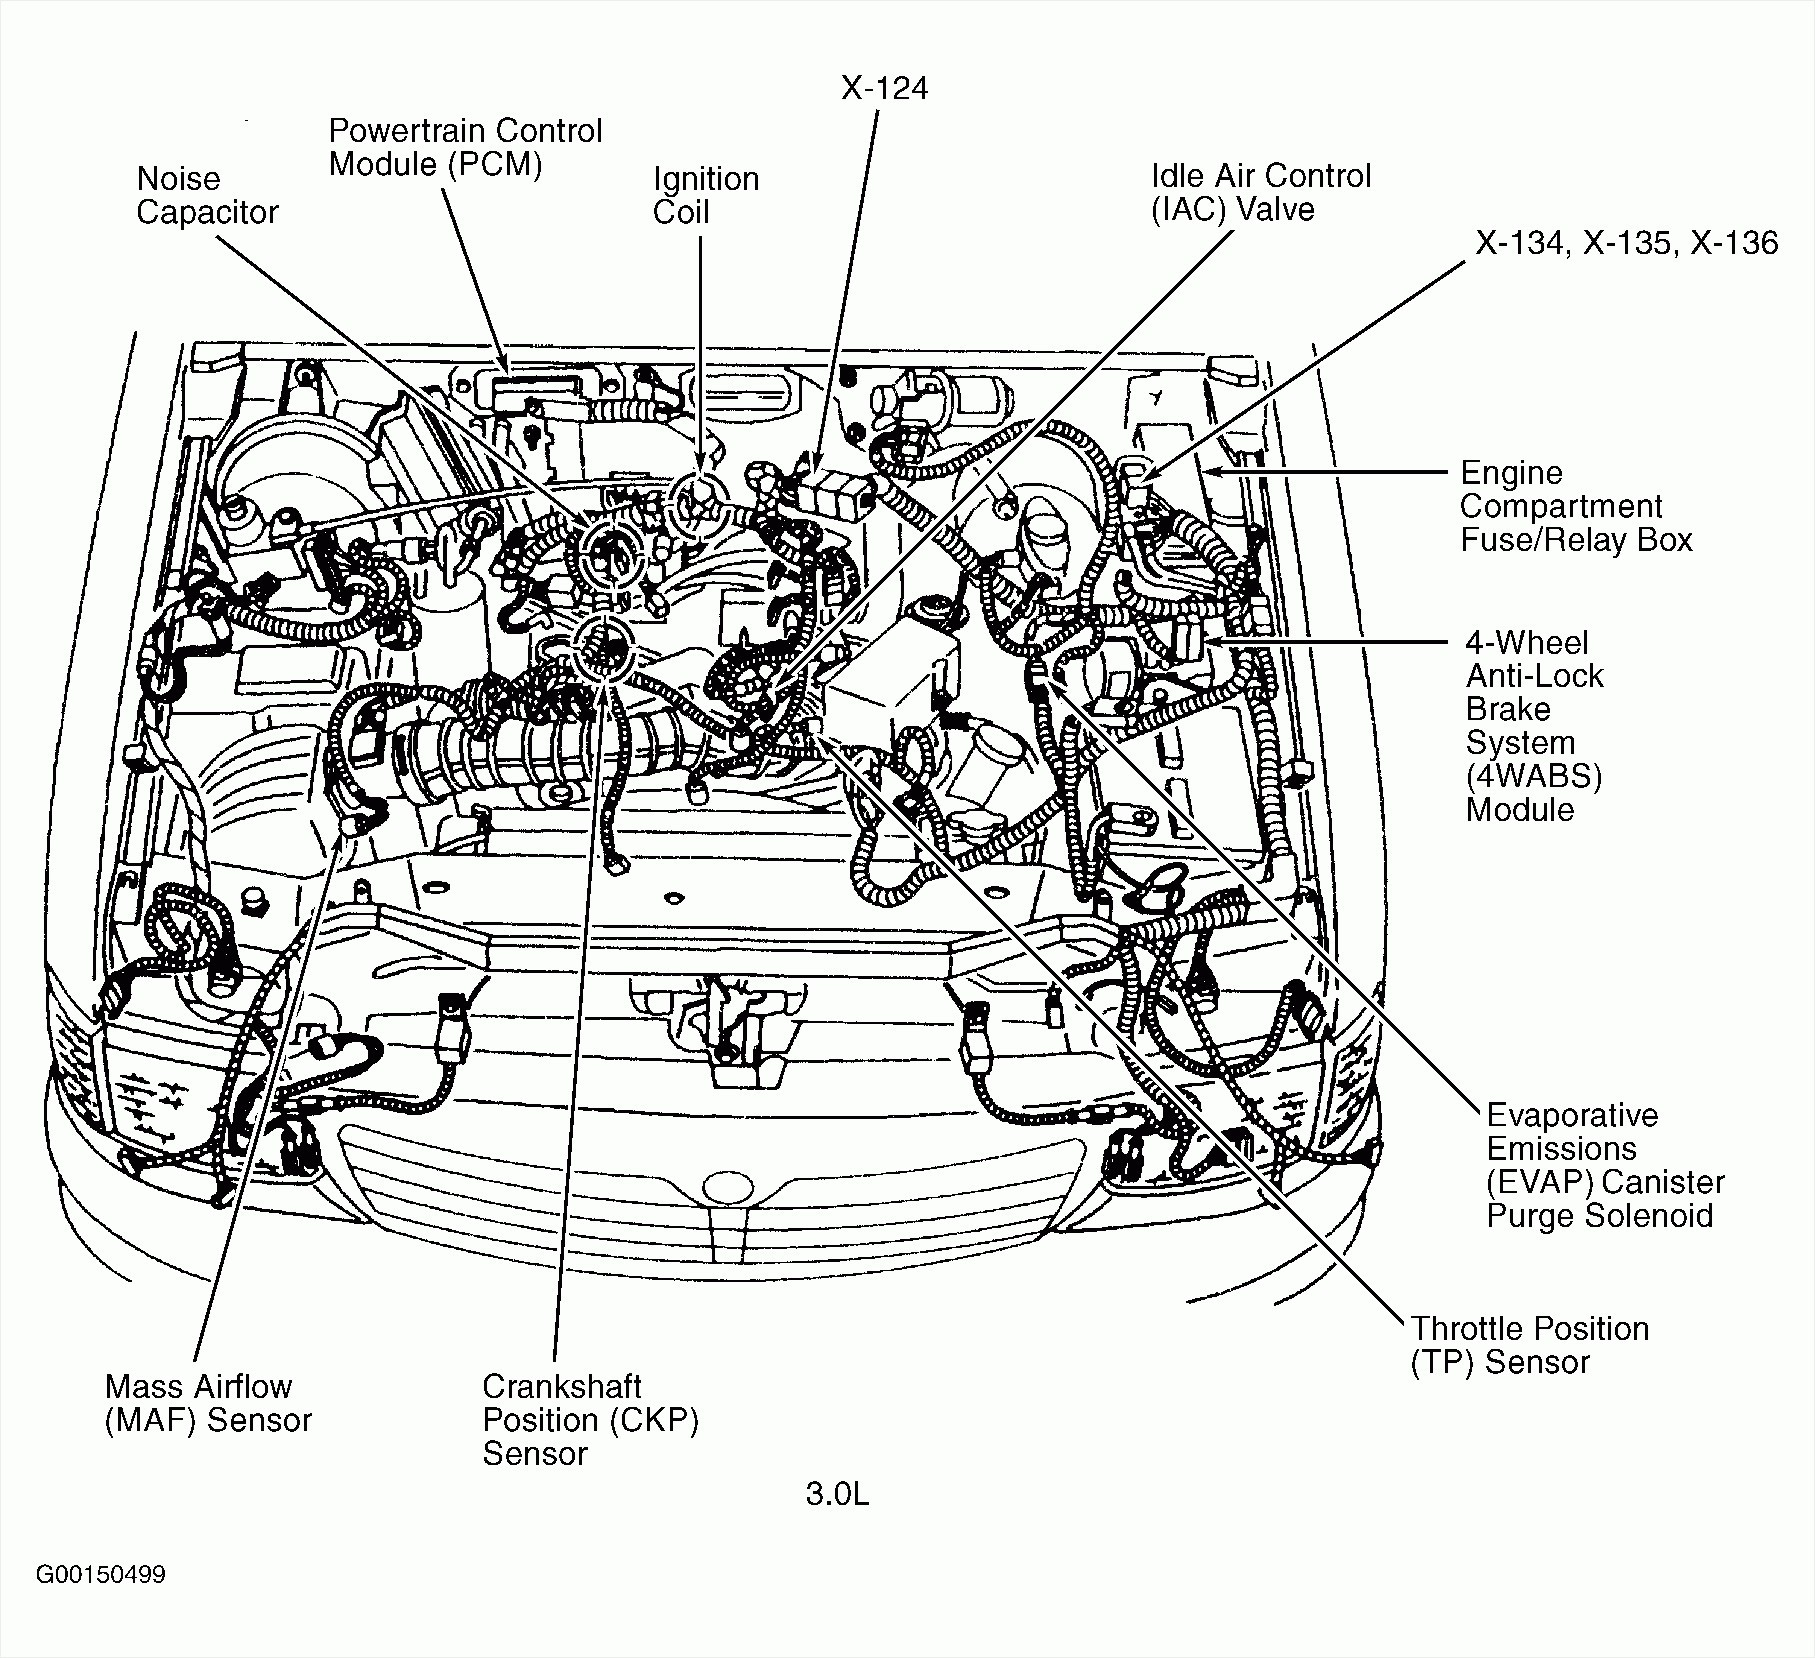 hight resolution of 1992 toyota 3400 engine vacuum hose diagram wiring diagrams favorites 2000 toyota 3 4 v6 engine